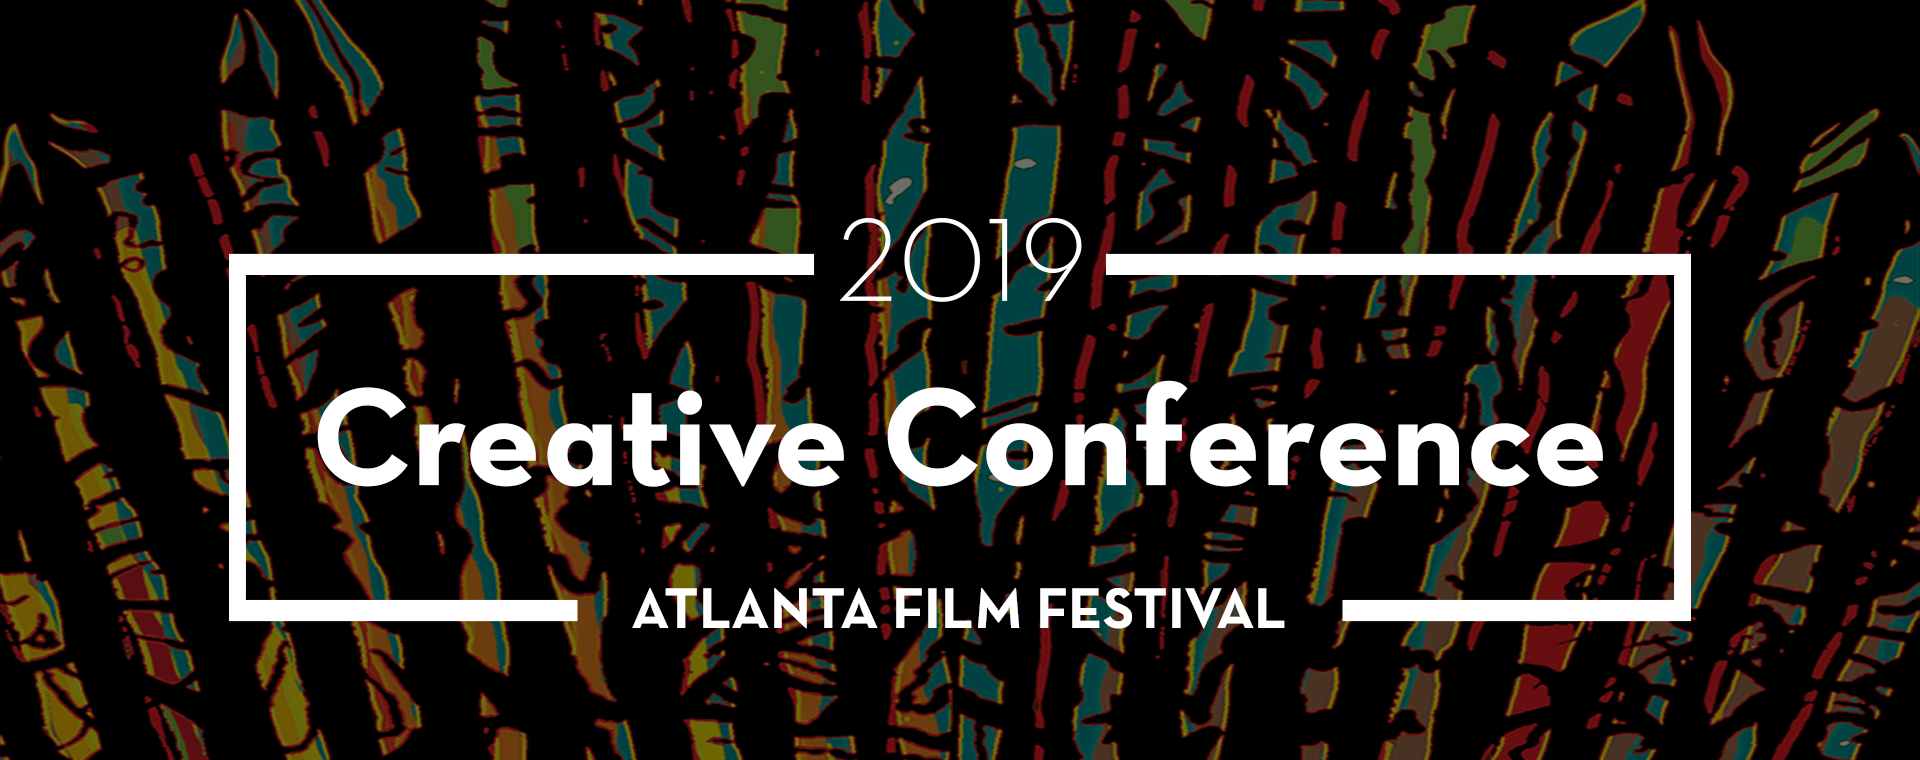 CreativeConference.png